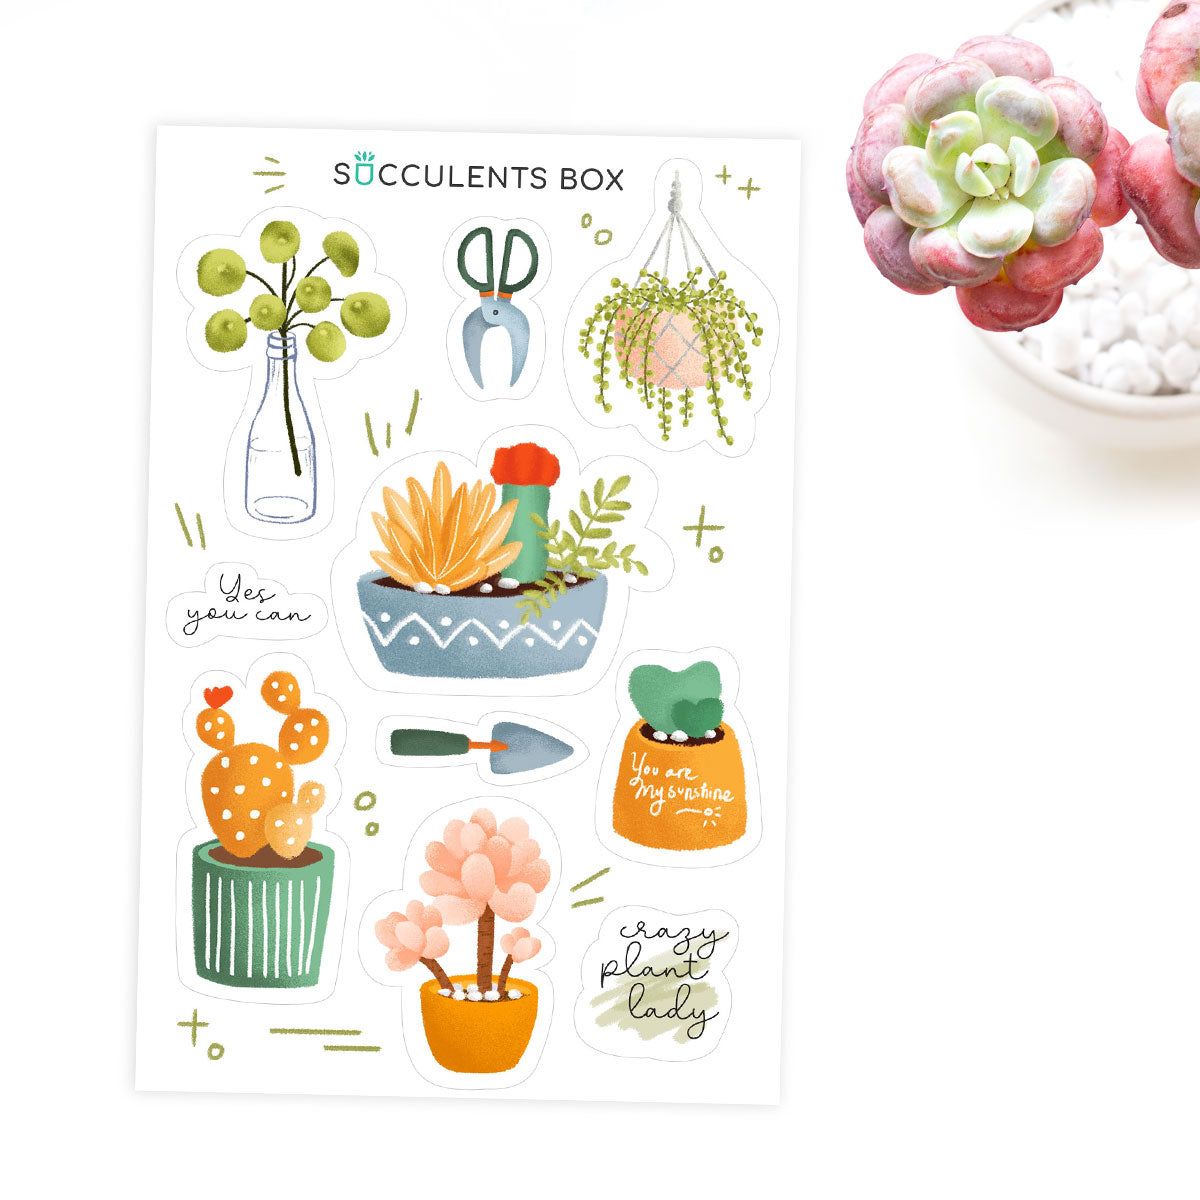 Succulent Planner Sticker for sale, succulent craft ideas, succulent gift ideas, cute plant stickers, decorative scrapbook sticker for sale, Plant Lady Sticker